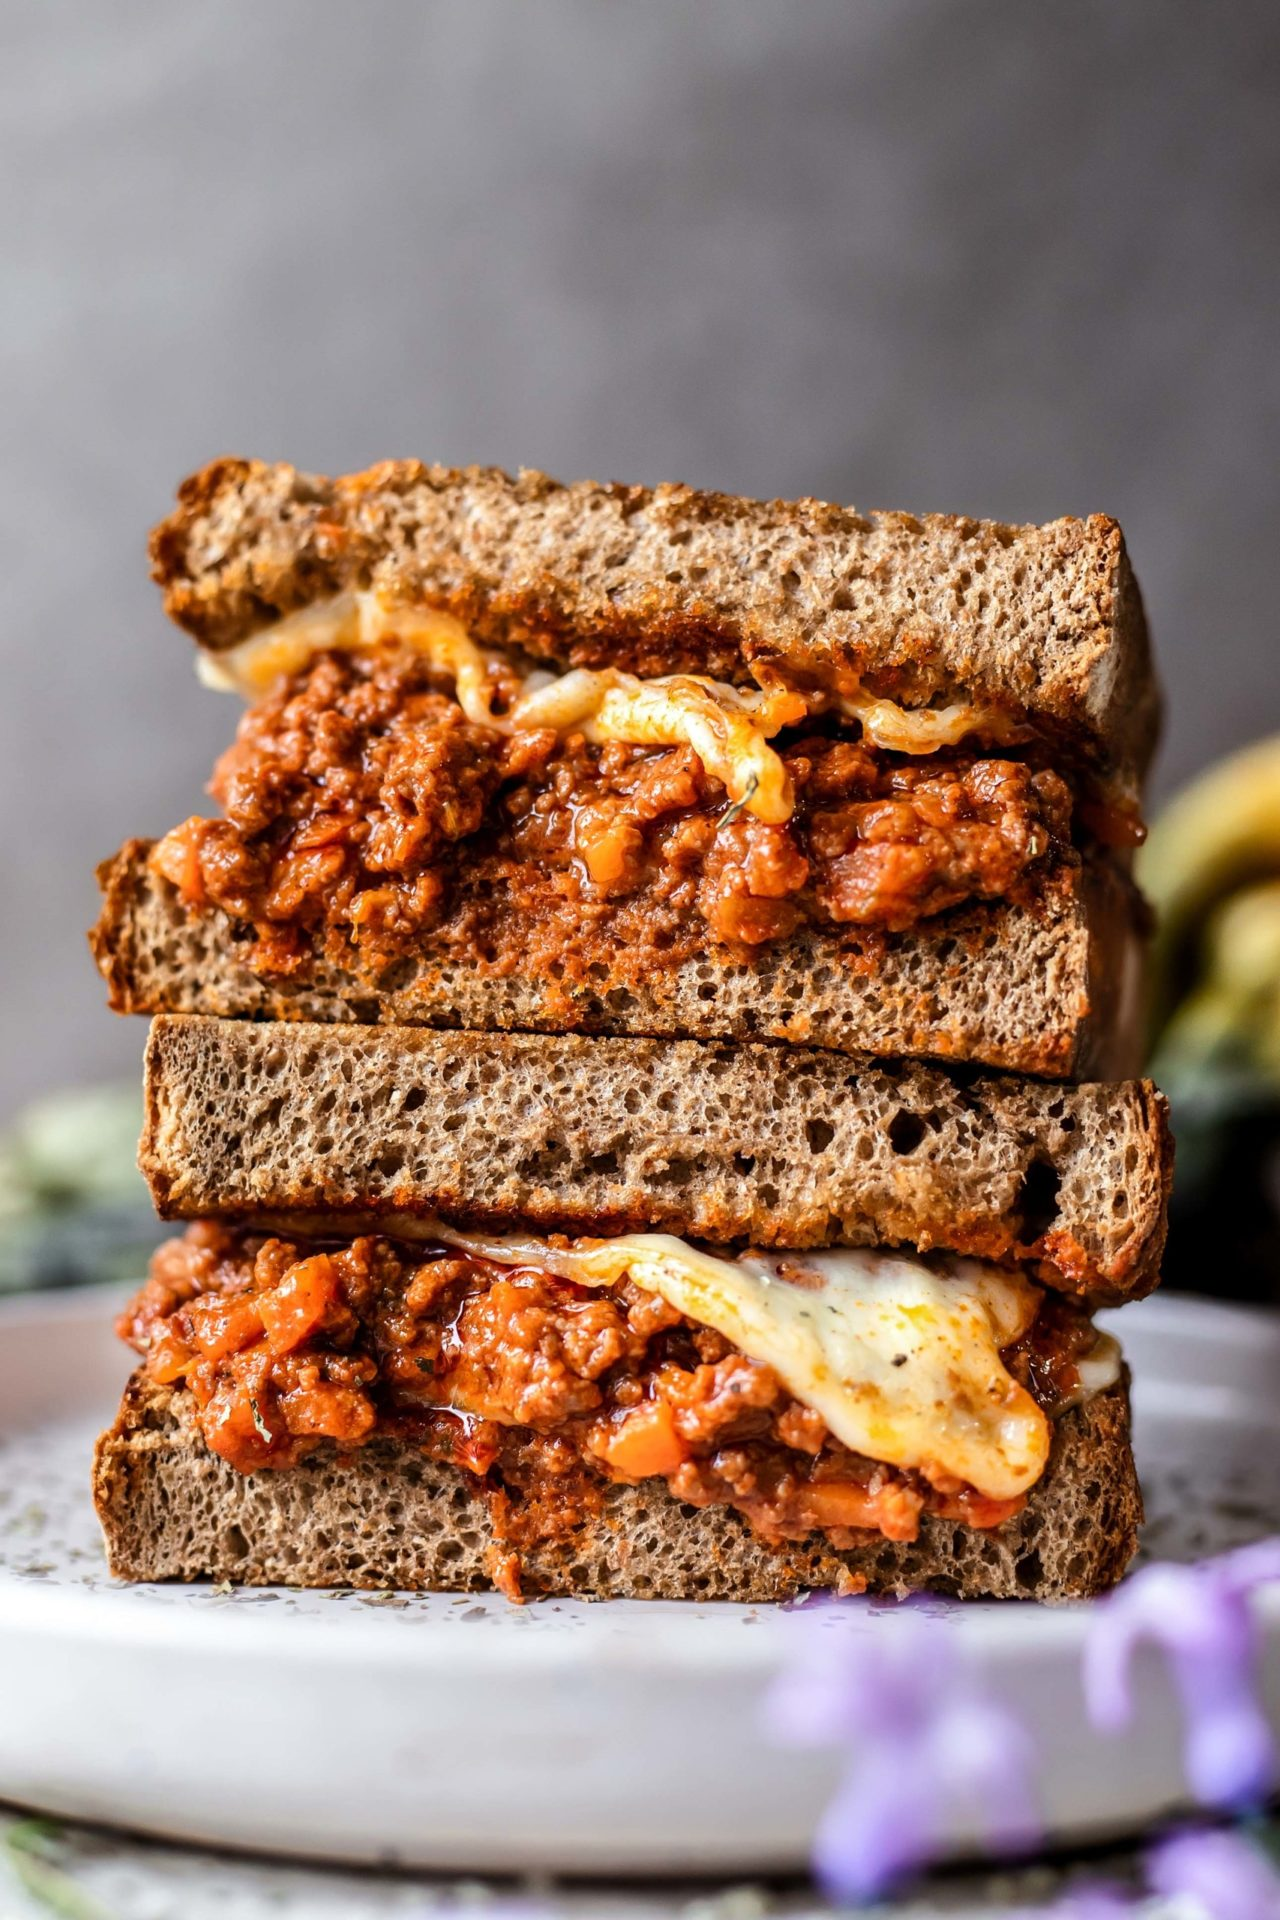 This Bolognese Grilled Cheese Sandwich is easy to make, super flavorful, filling, cheesy and the ultimate comfort food!